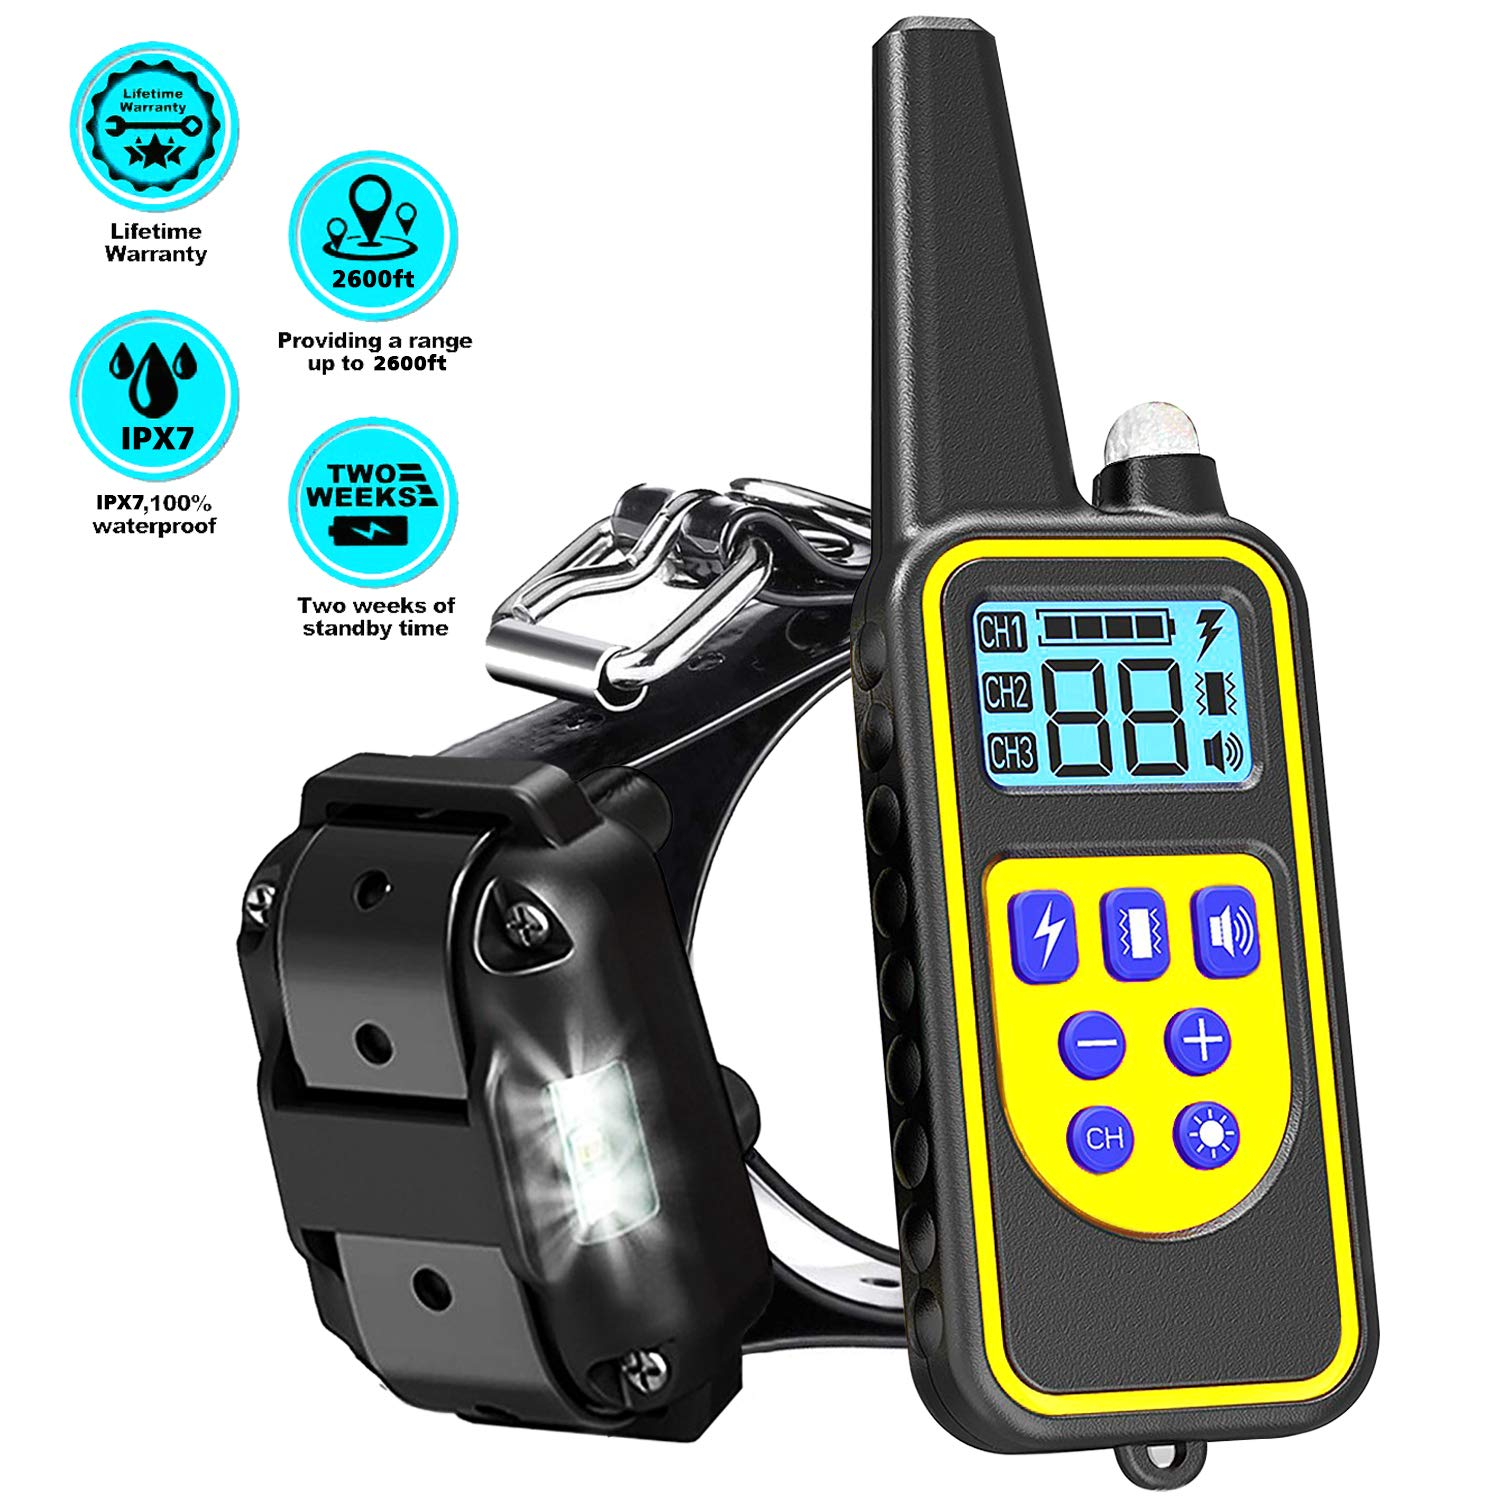 LINNSE Shock Collar for Dogs, Dog Shock Collar with Remote Control for 2600ft Range 100% Waterproof & Rechargeable Dog Training Collar with Remote for Dogs